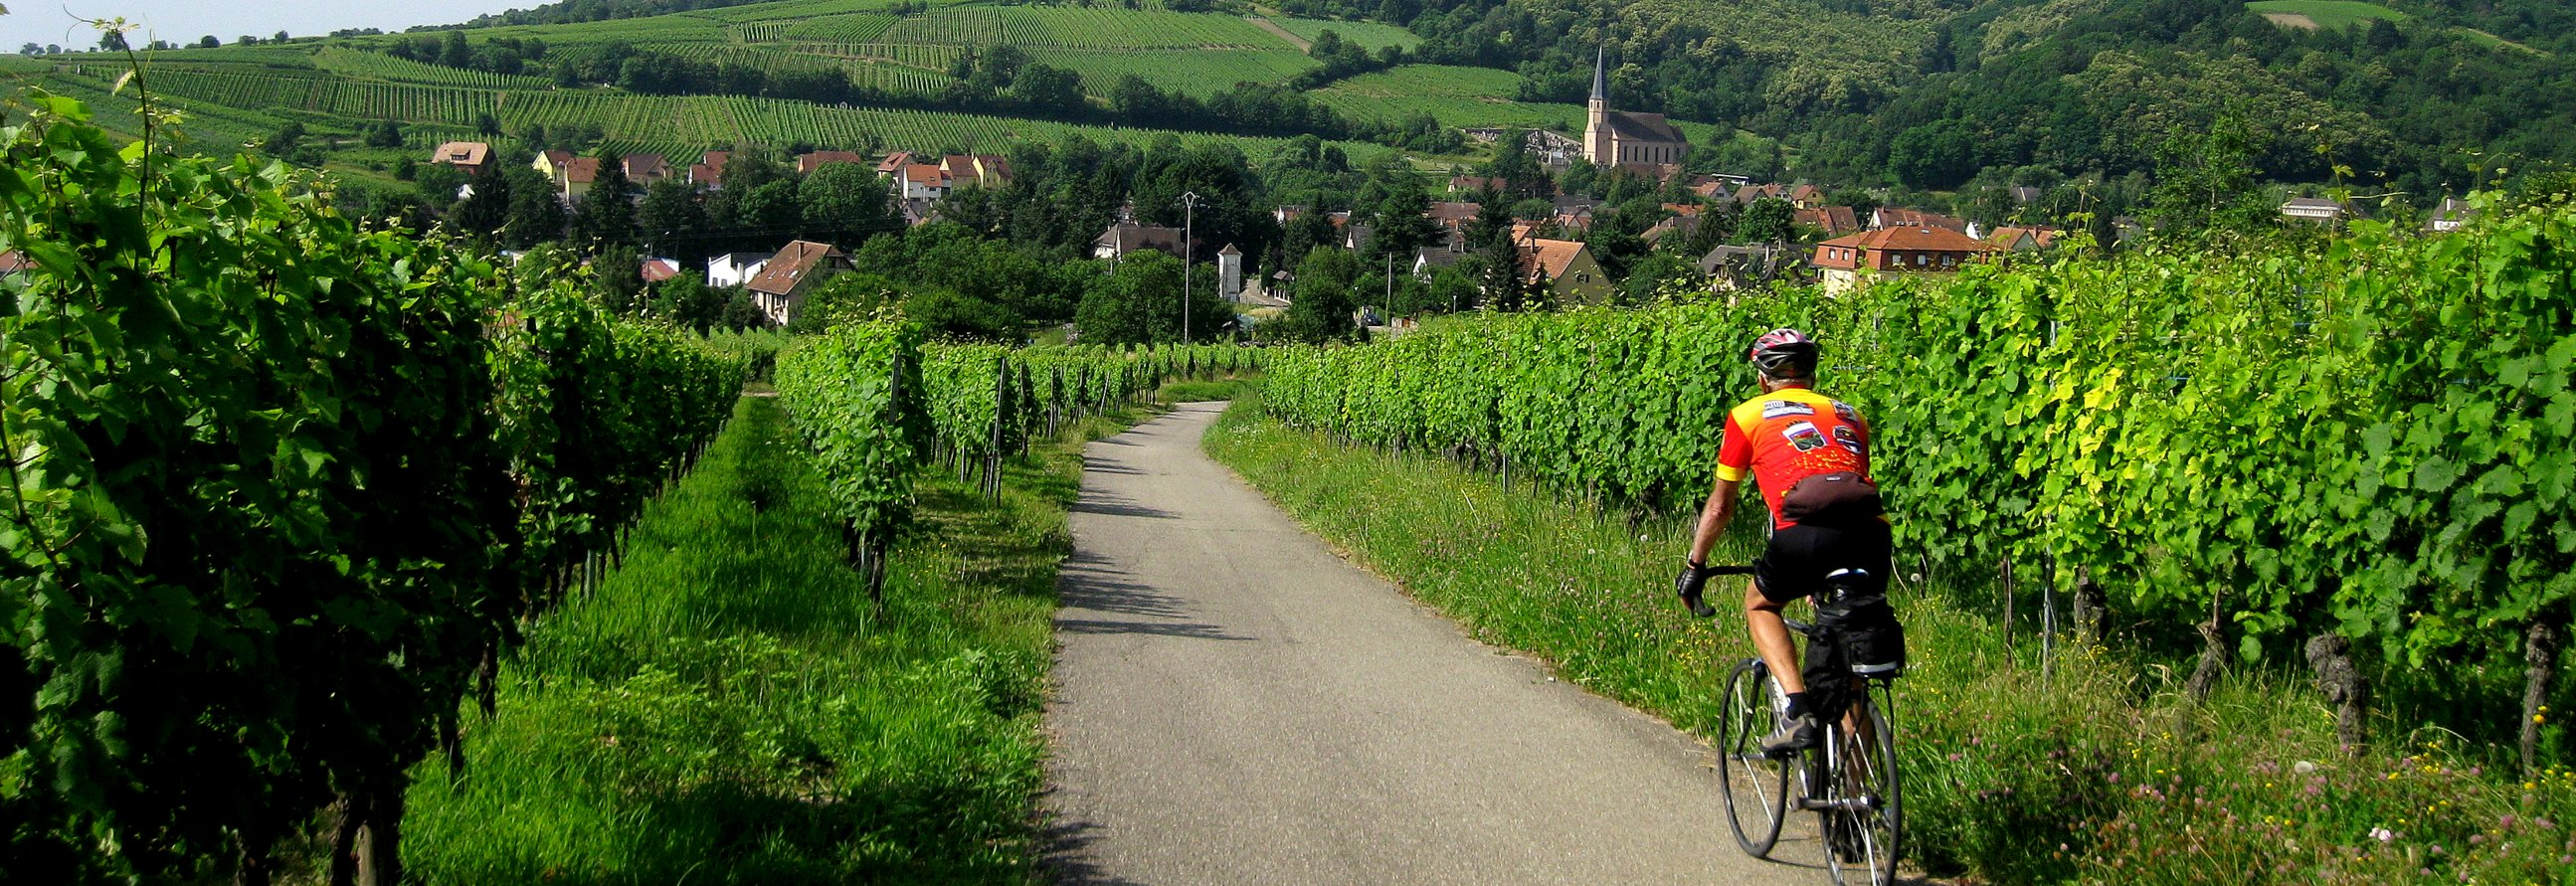 Bicycling the vineyards of Alsace in France